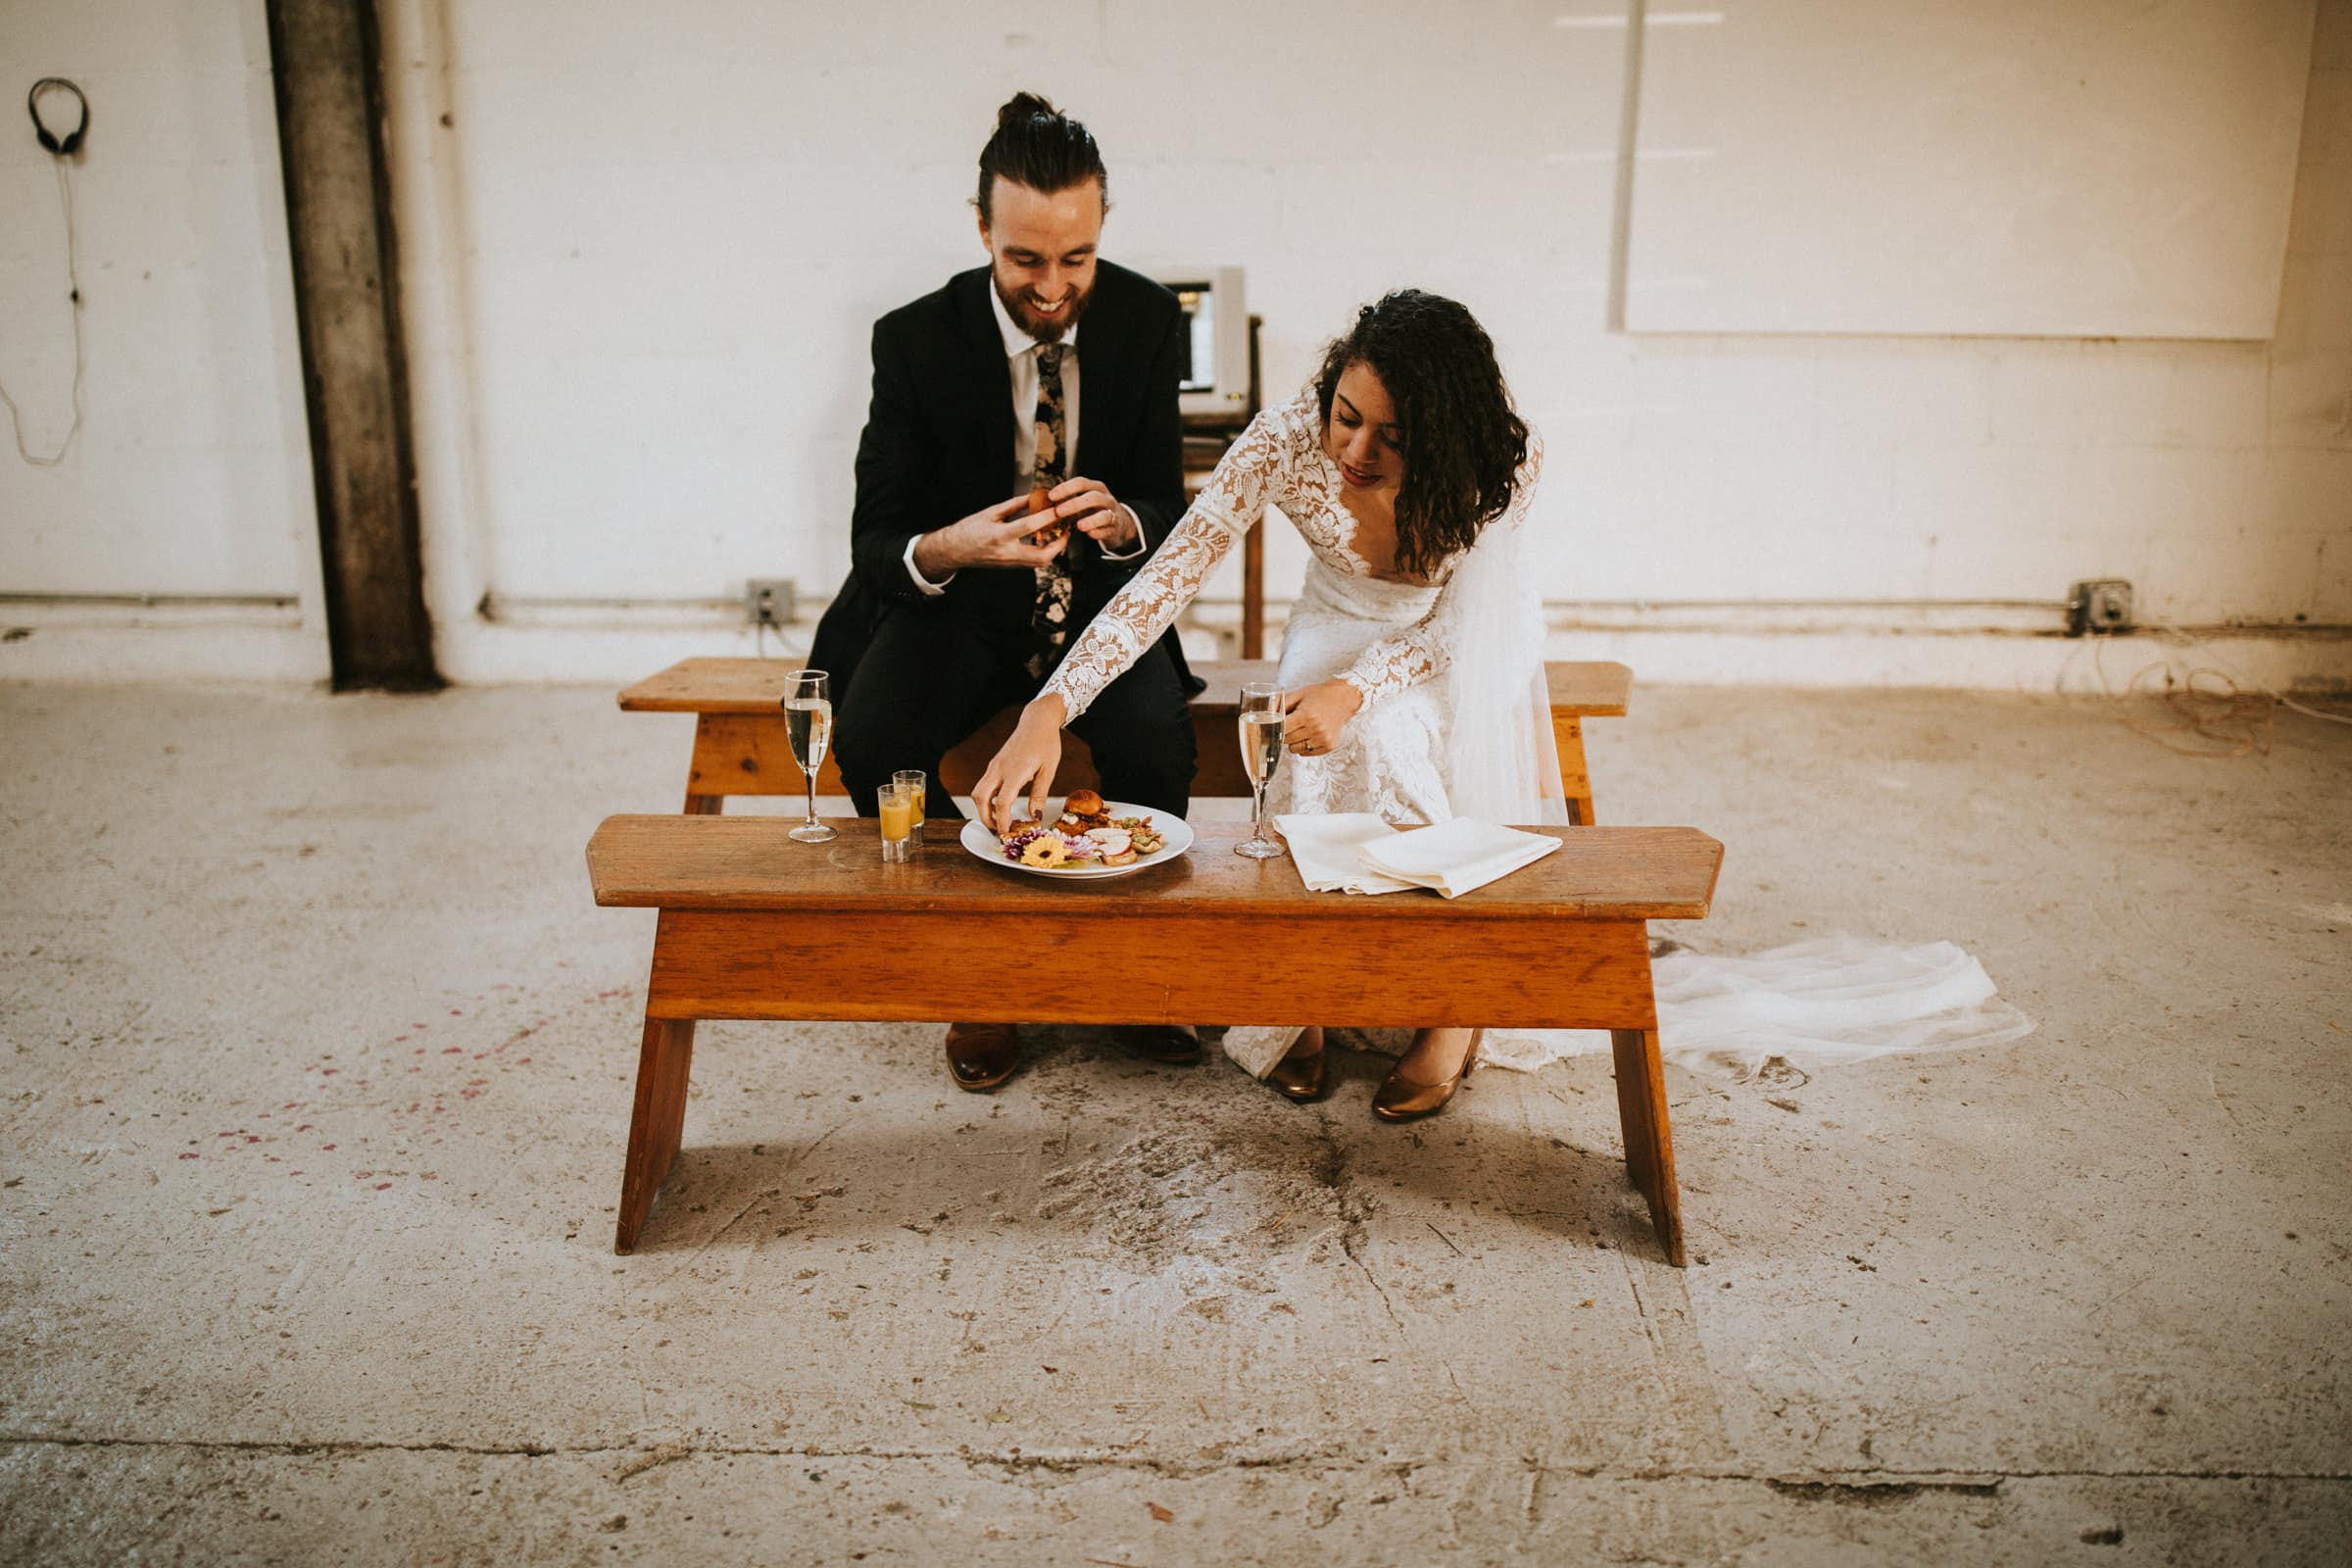 The wedding couple is sitting on a small bench and is eating snacks and drinking champaign.